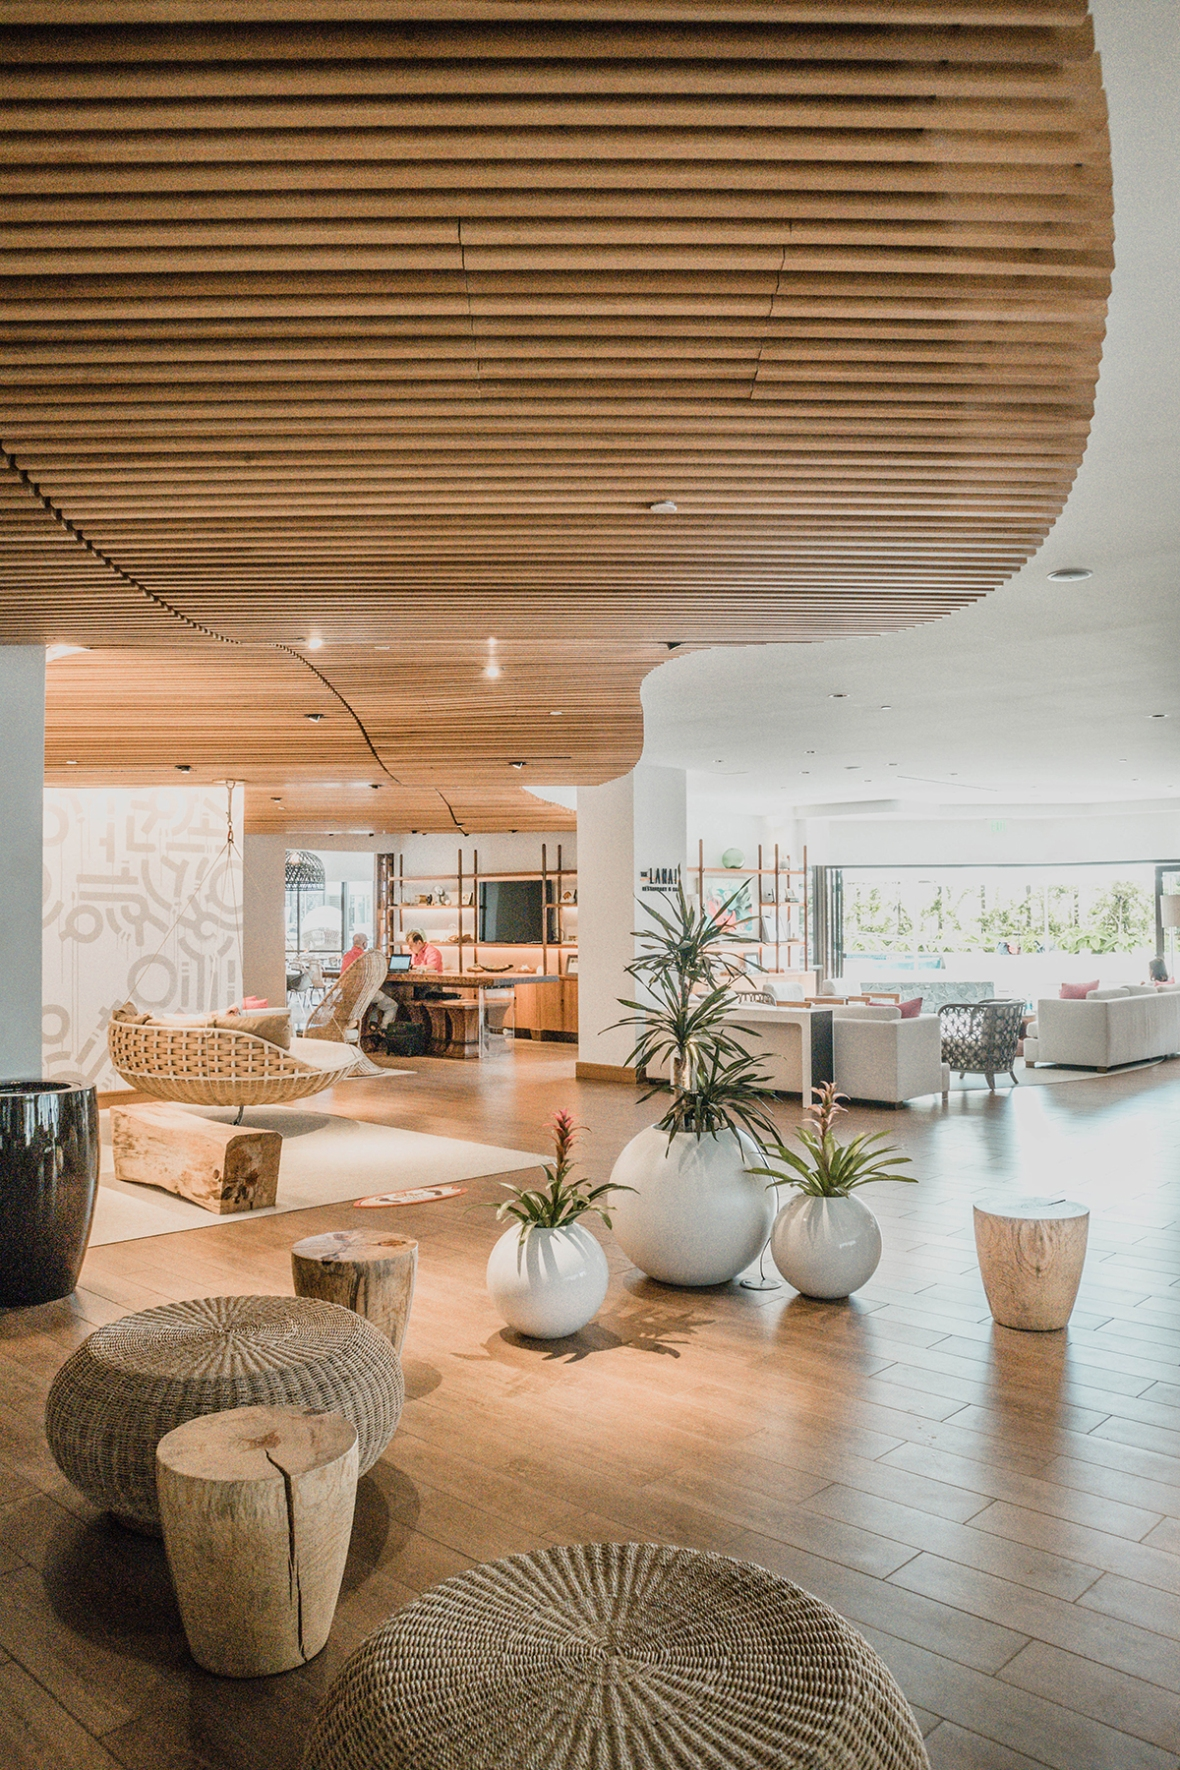 The Aloha Spirit At Hyatt Centric And A Thousand Words